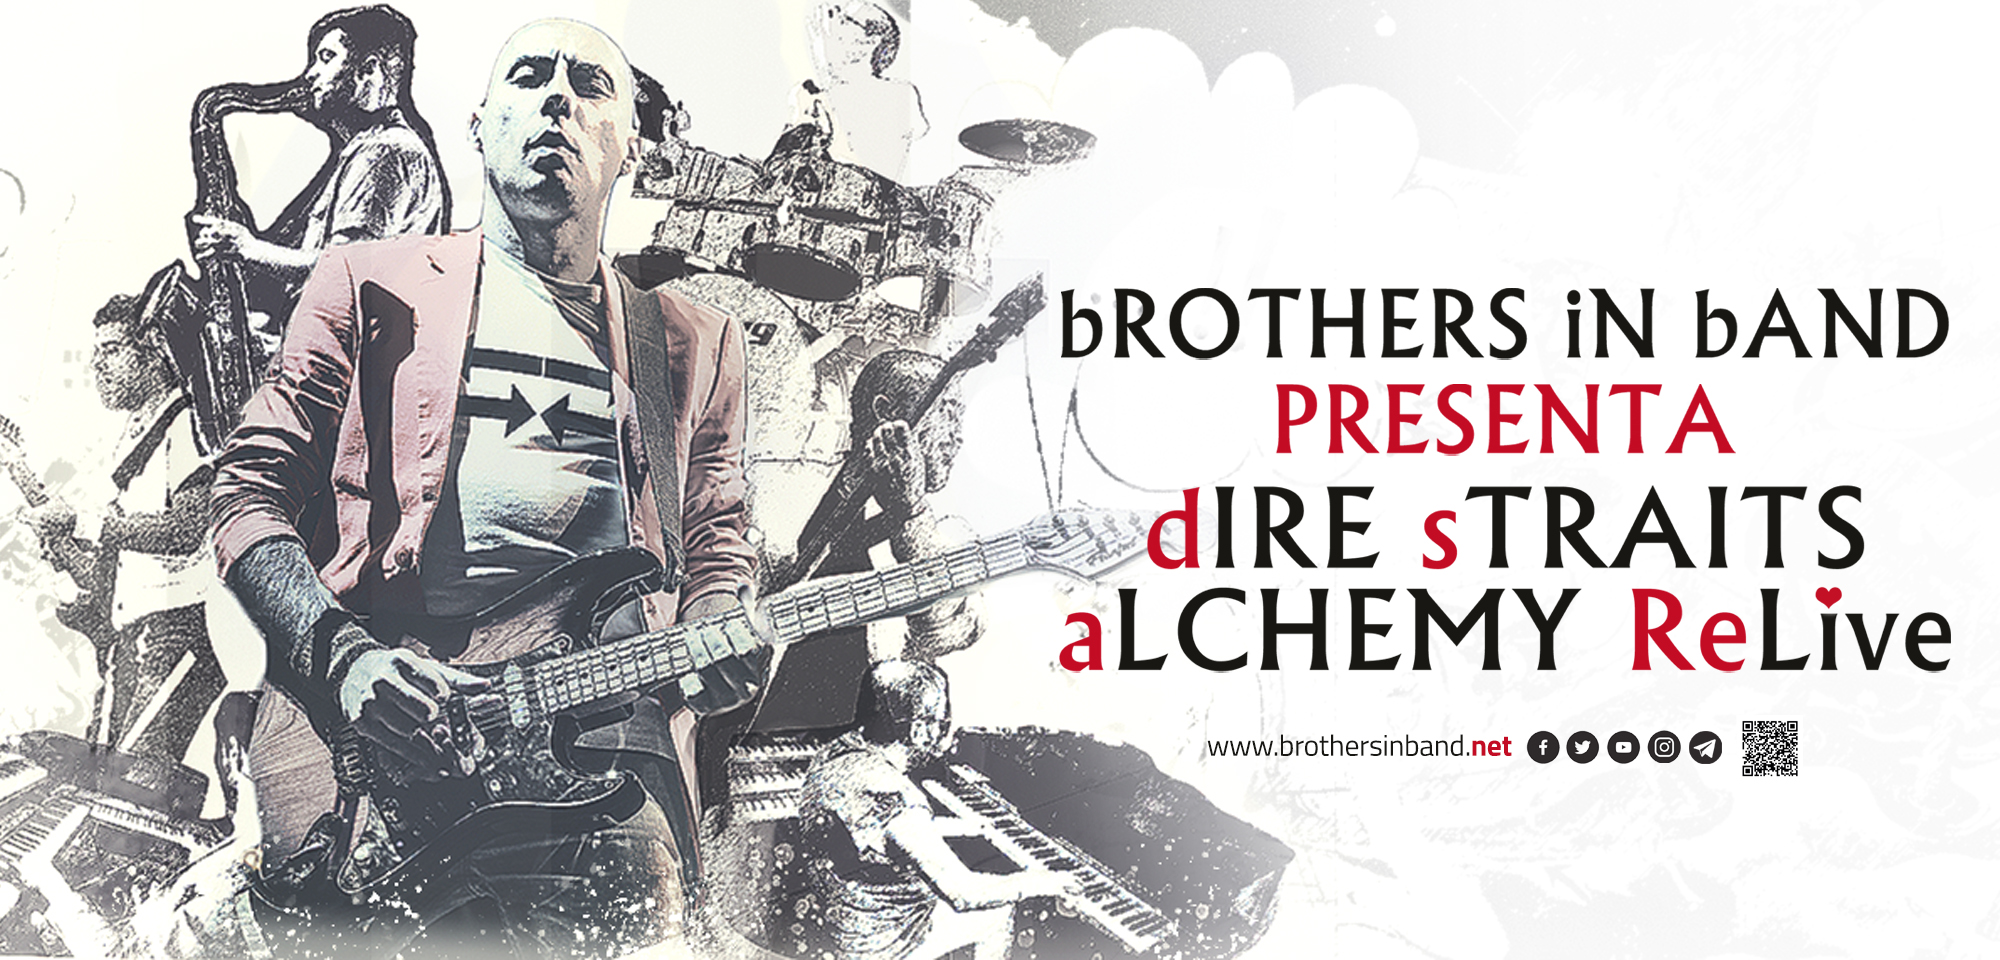 bROTHERS iN bAND - dIRE sTRAITS aLCHEMY ReLIVE